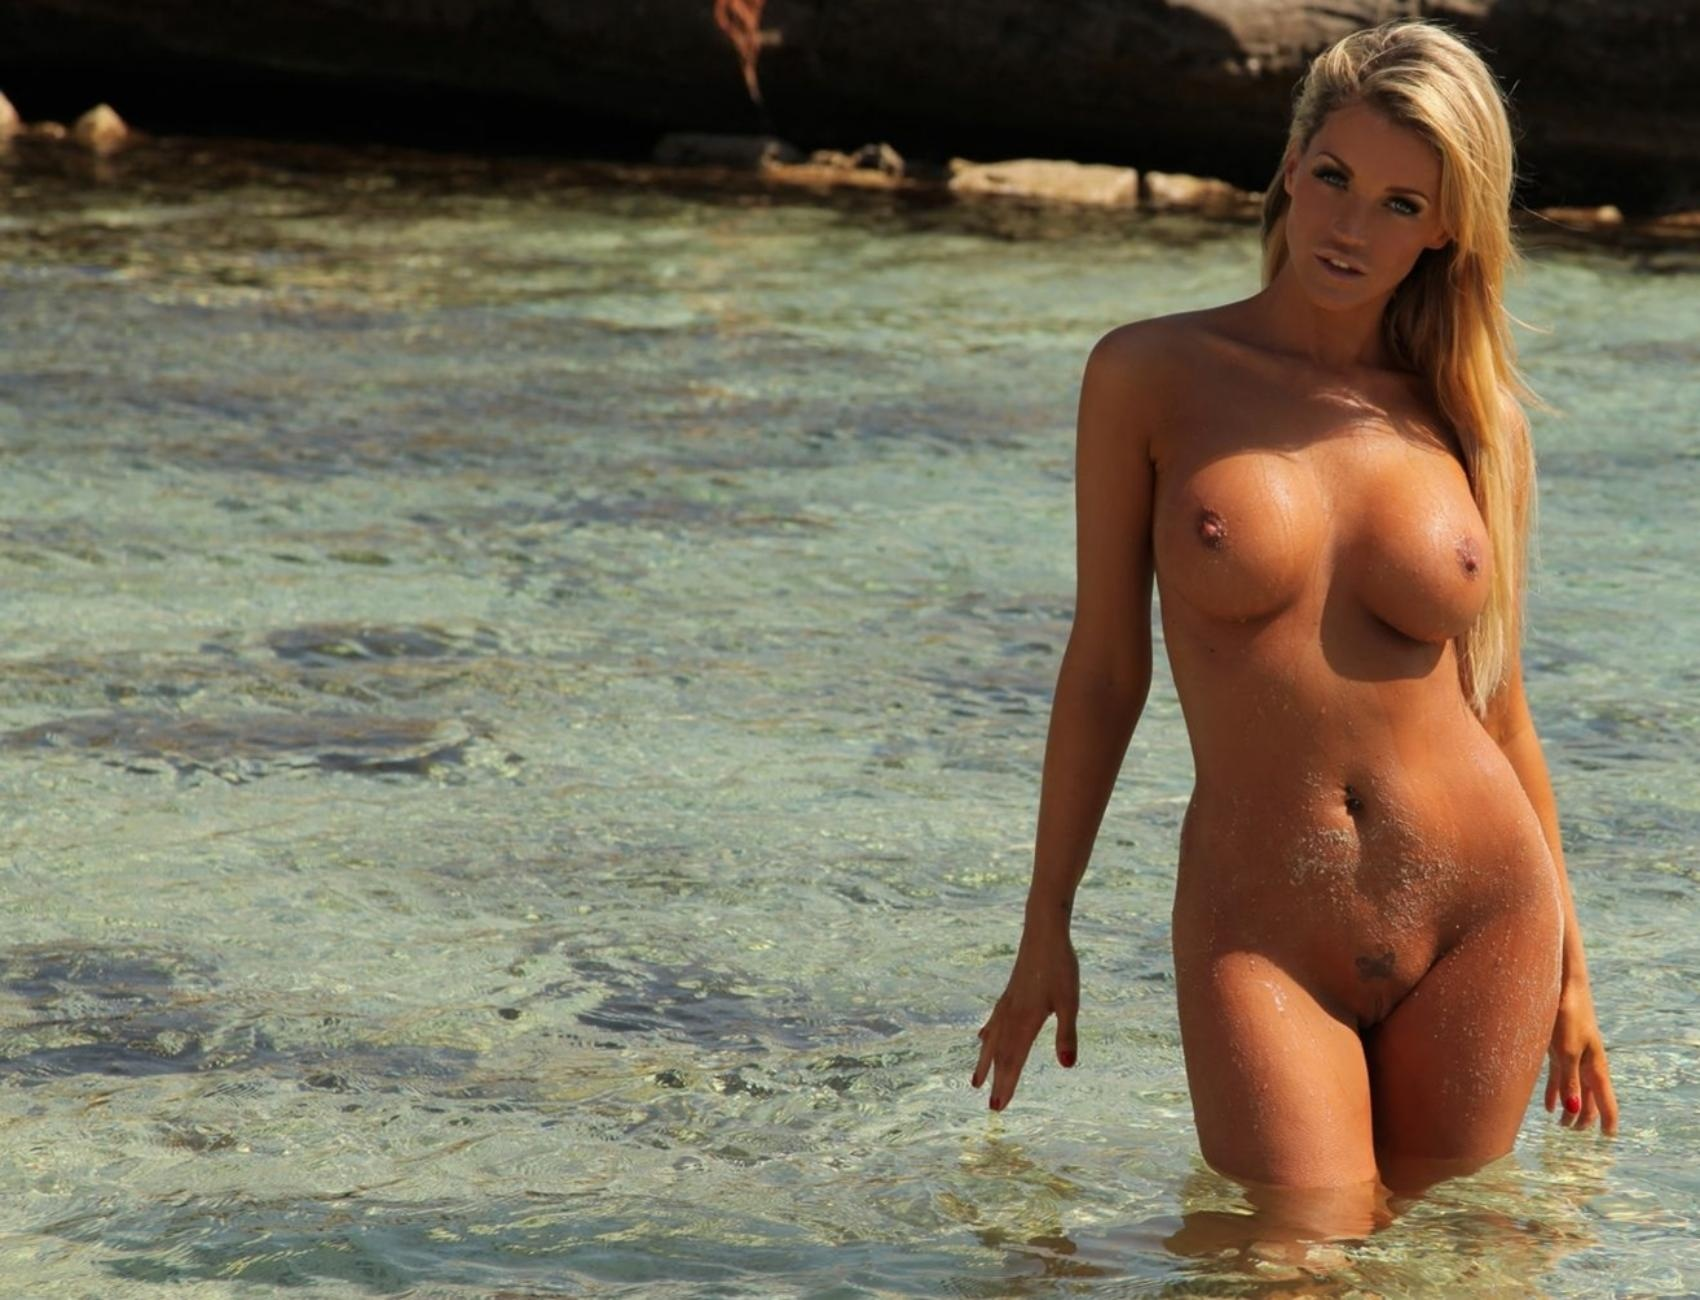 Wallpaper Holly Henderson, Nude, Naked, Beach, Big Tits -8448